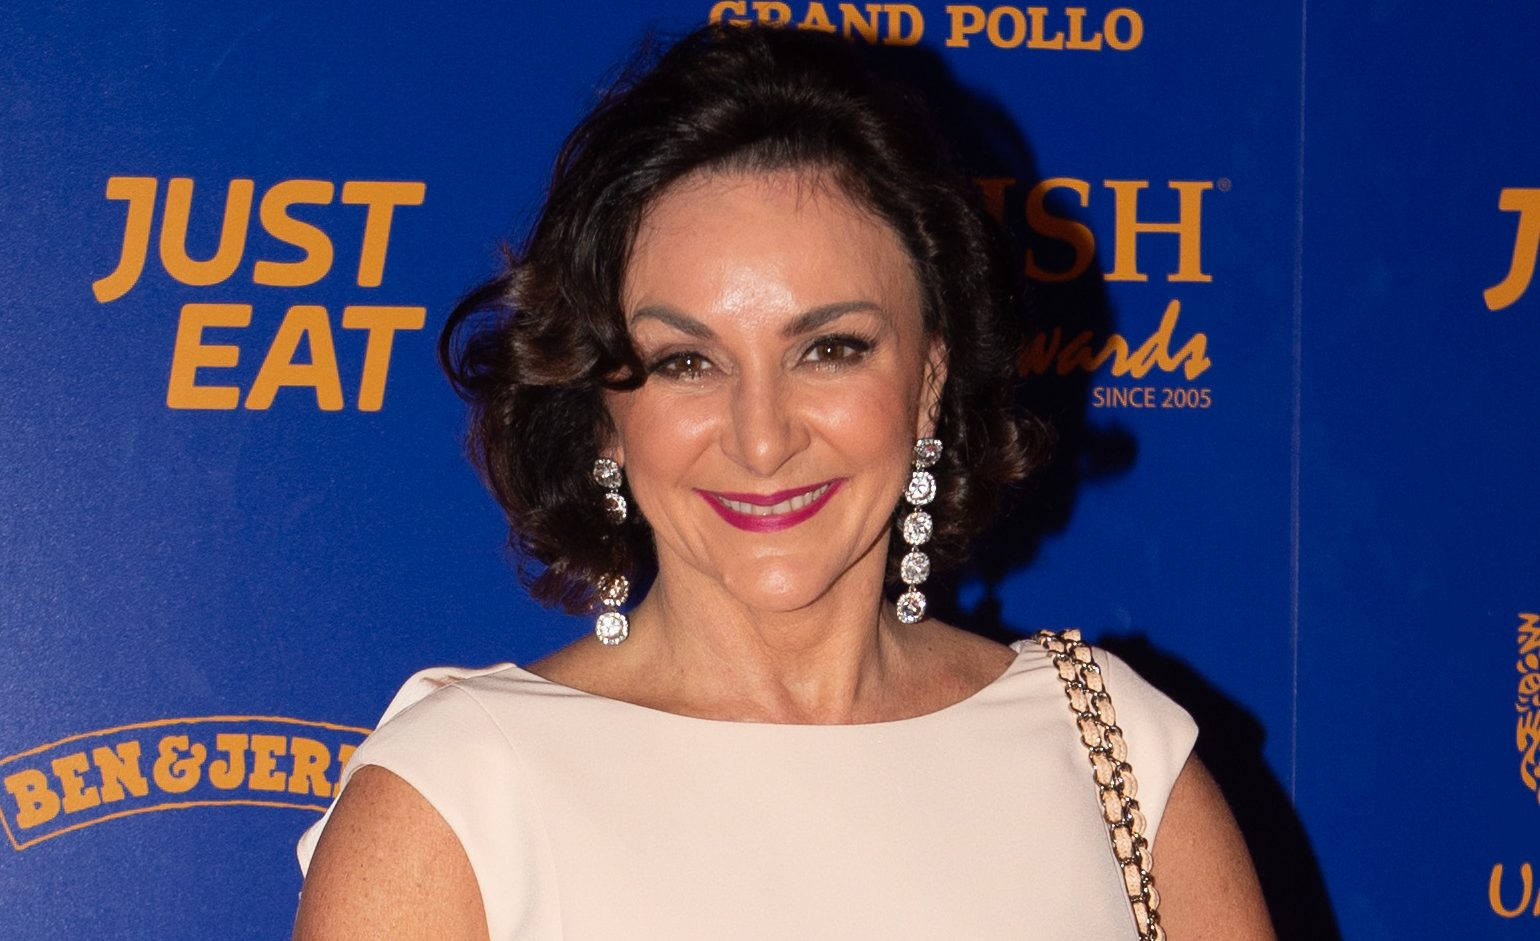 Strictly Come Dancing judge Shirley Ballas injured ahead of Saturday's live final